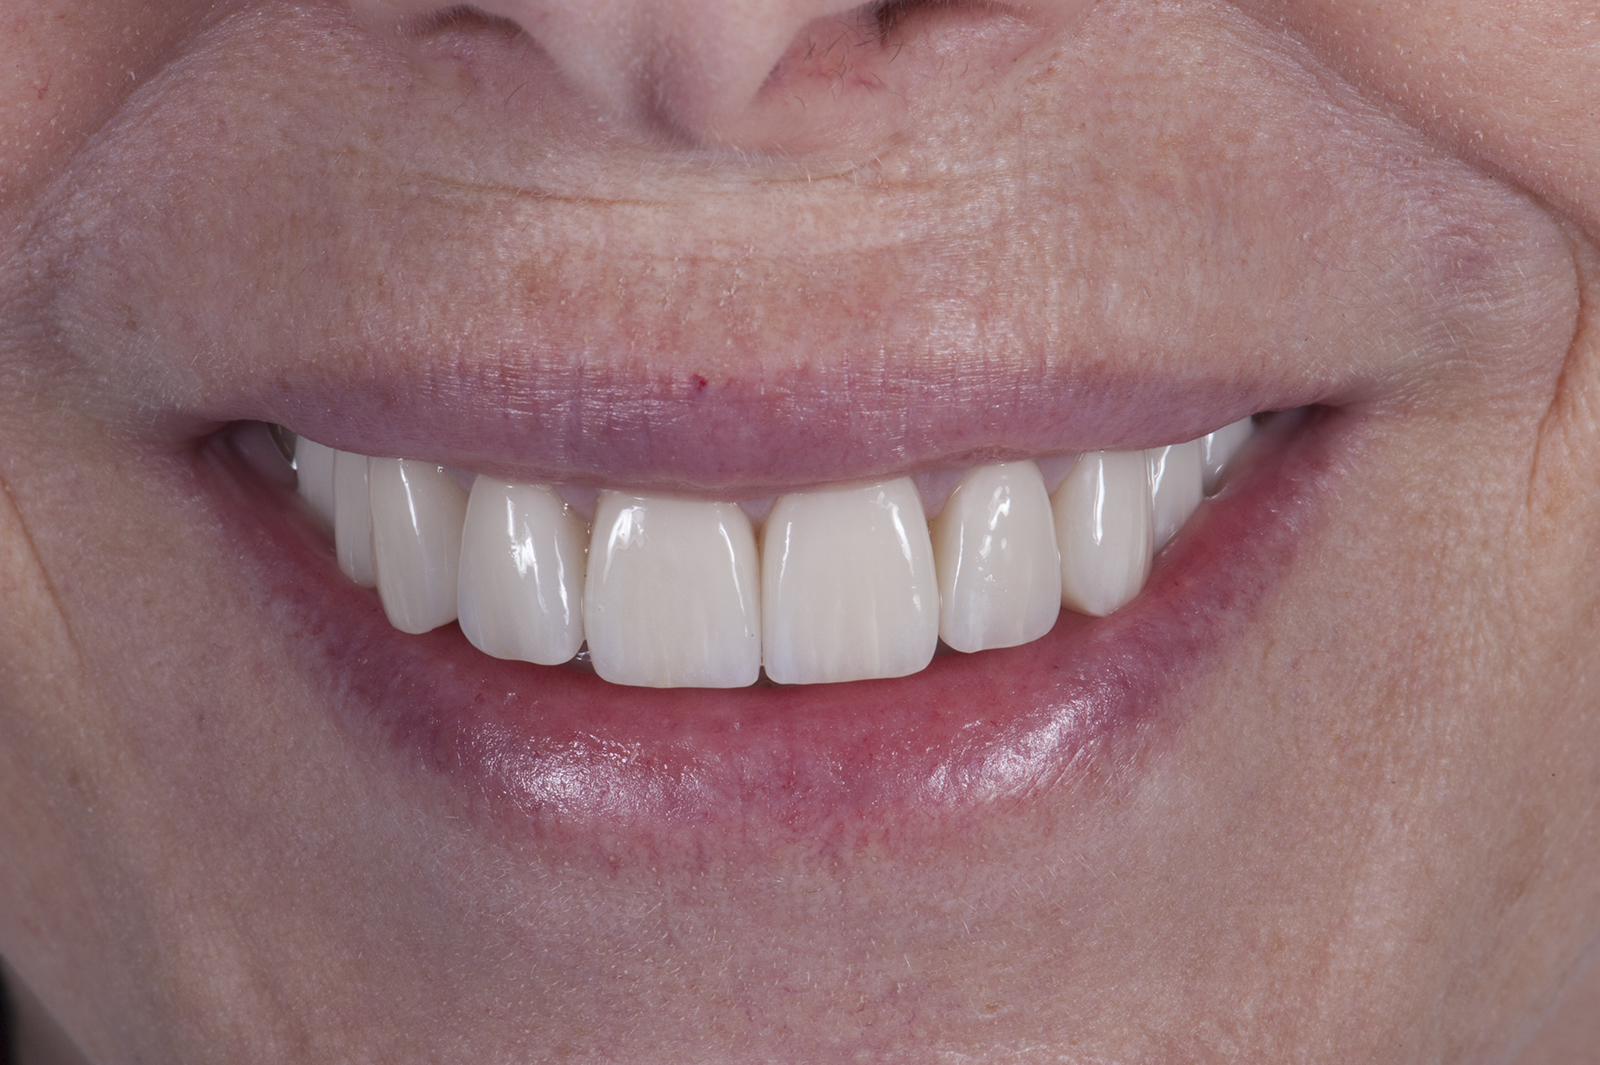 Crowns Vs. Porcelain Veneers Vs. Dental Implants